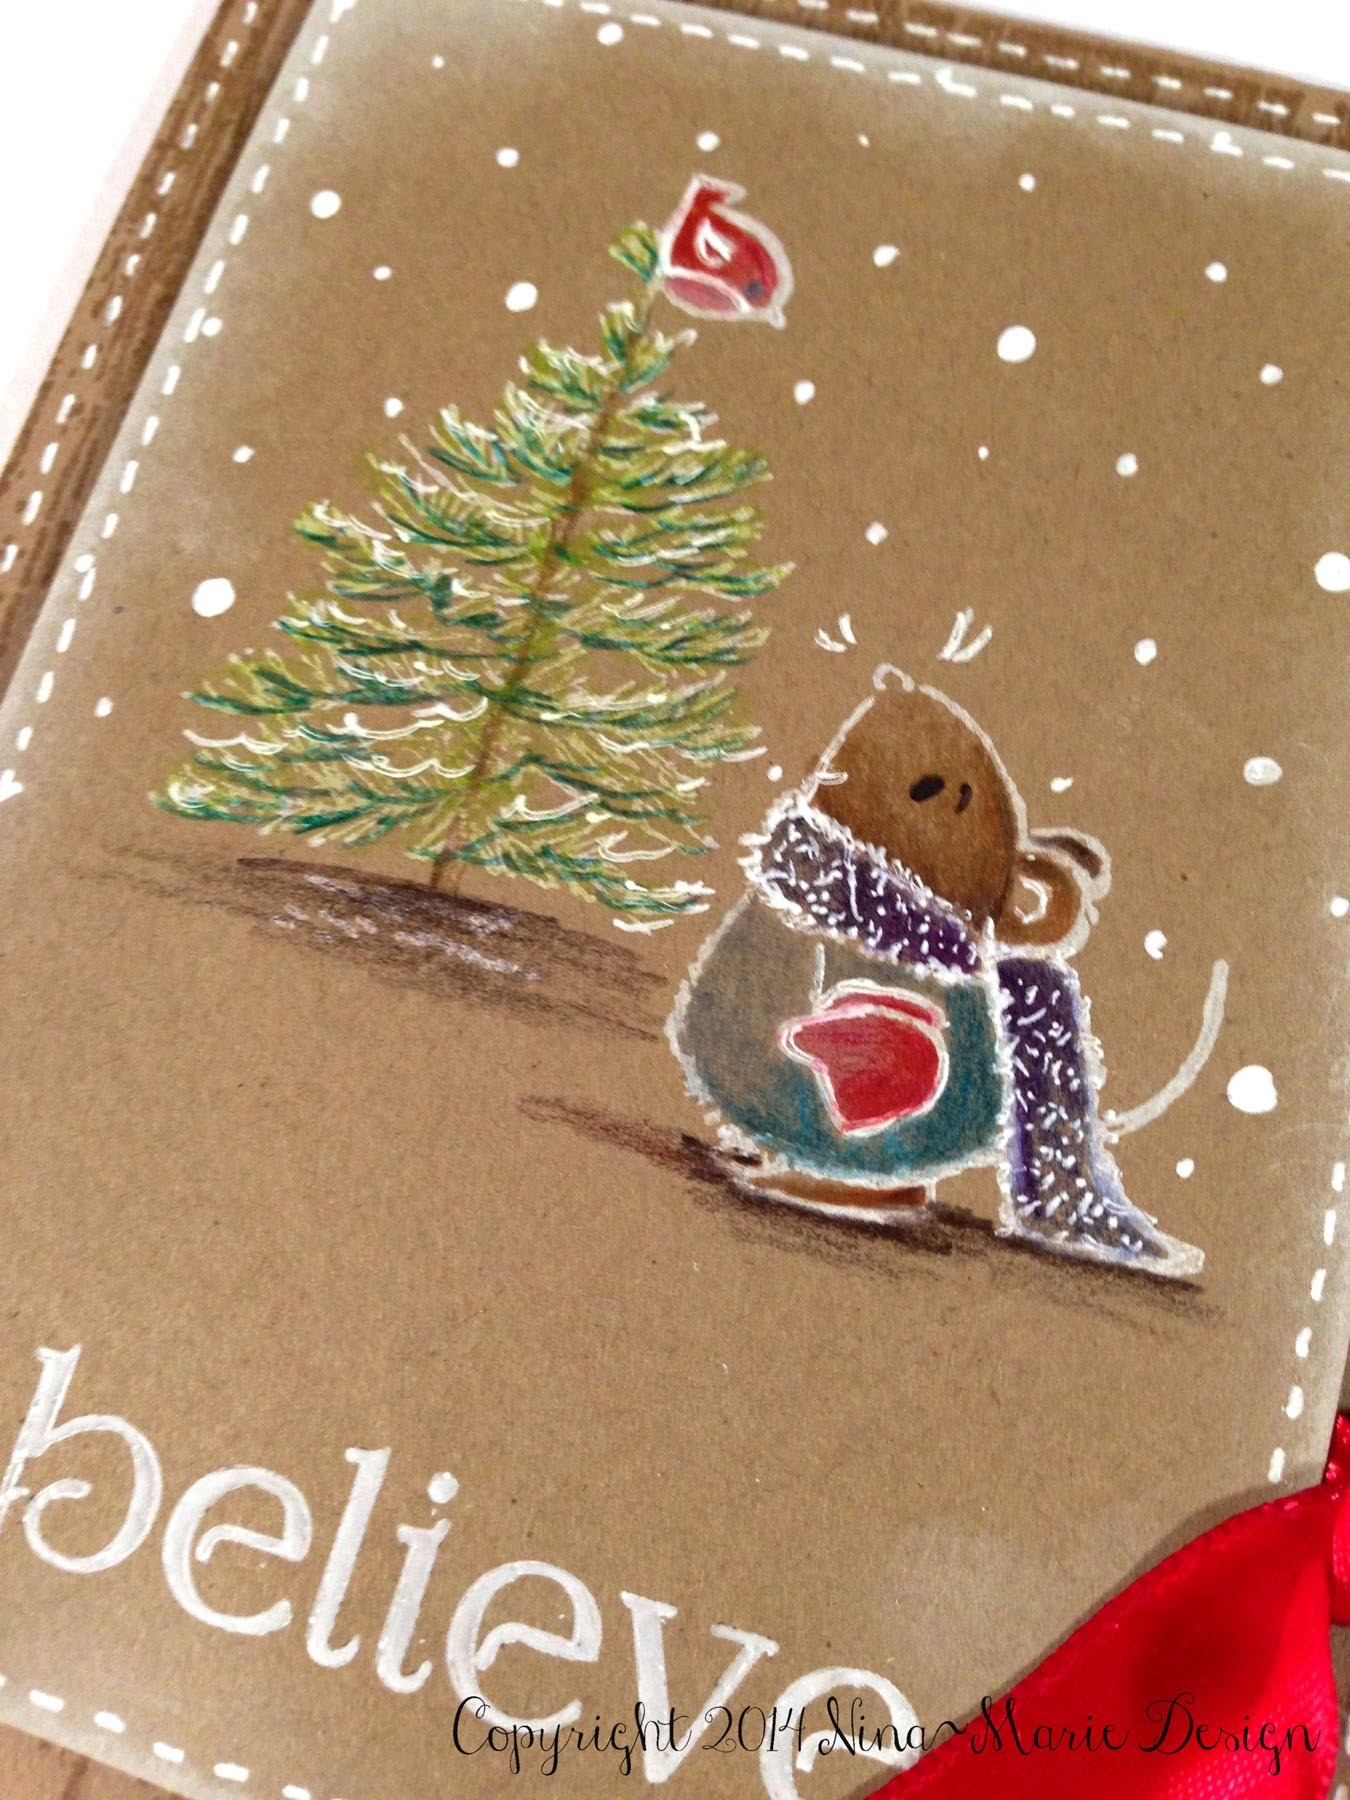 Believe in Christmas- Colored Pencil Tutorial